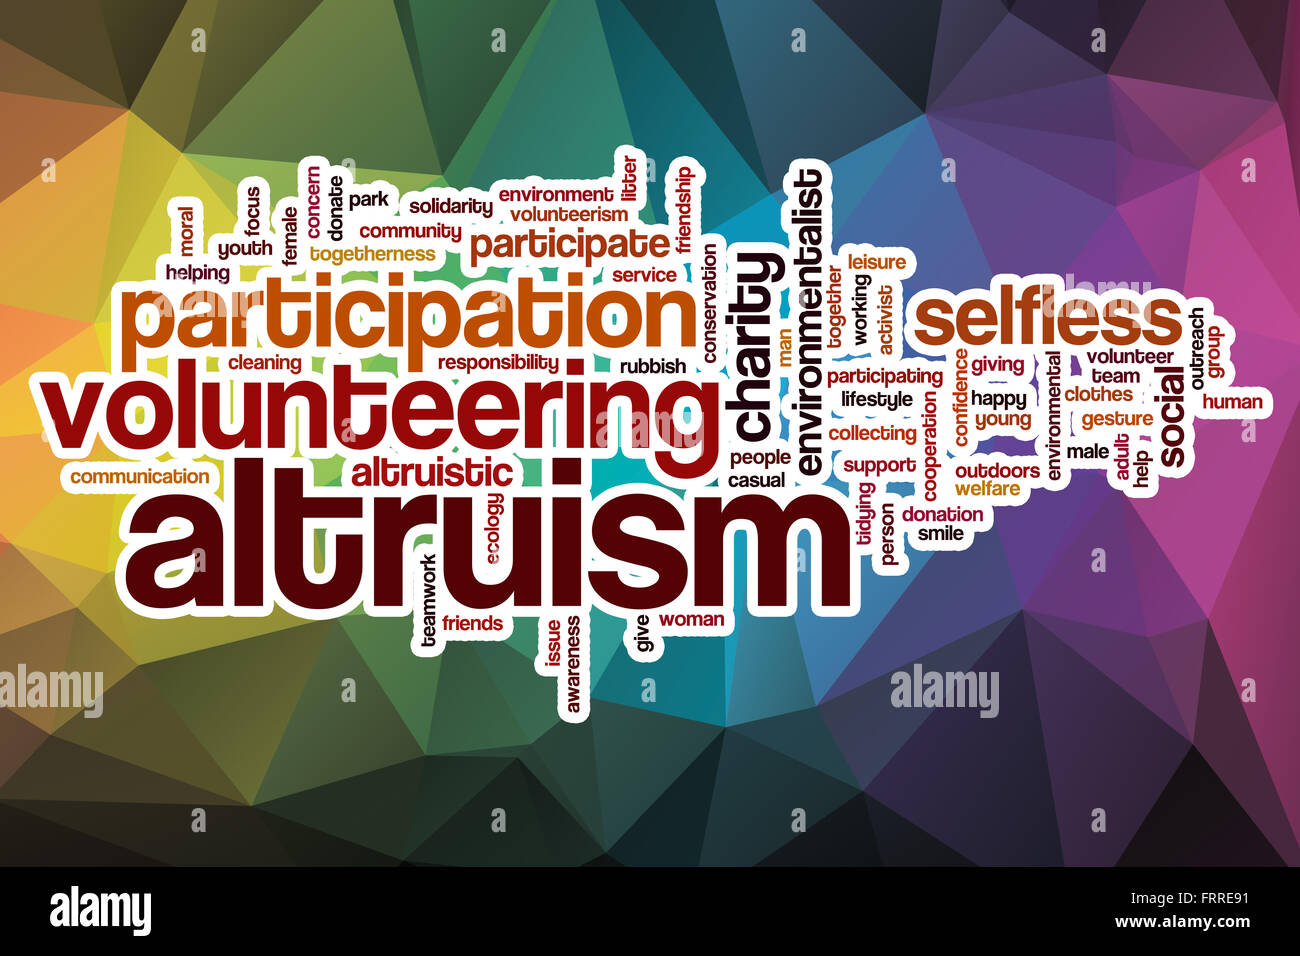 Altruism word cloud concept with abstract background - Stock Image